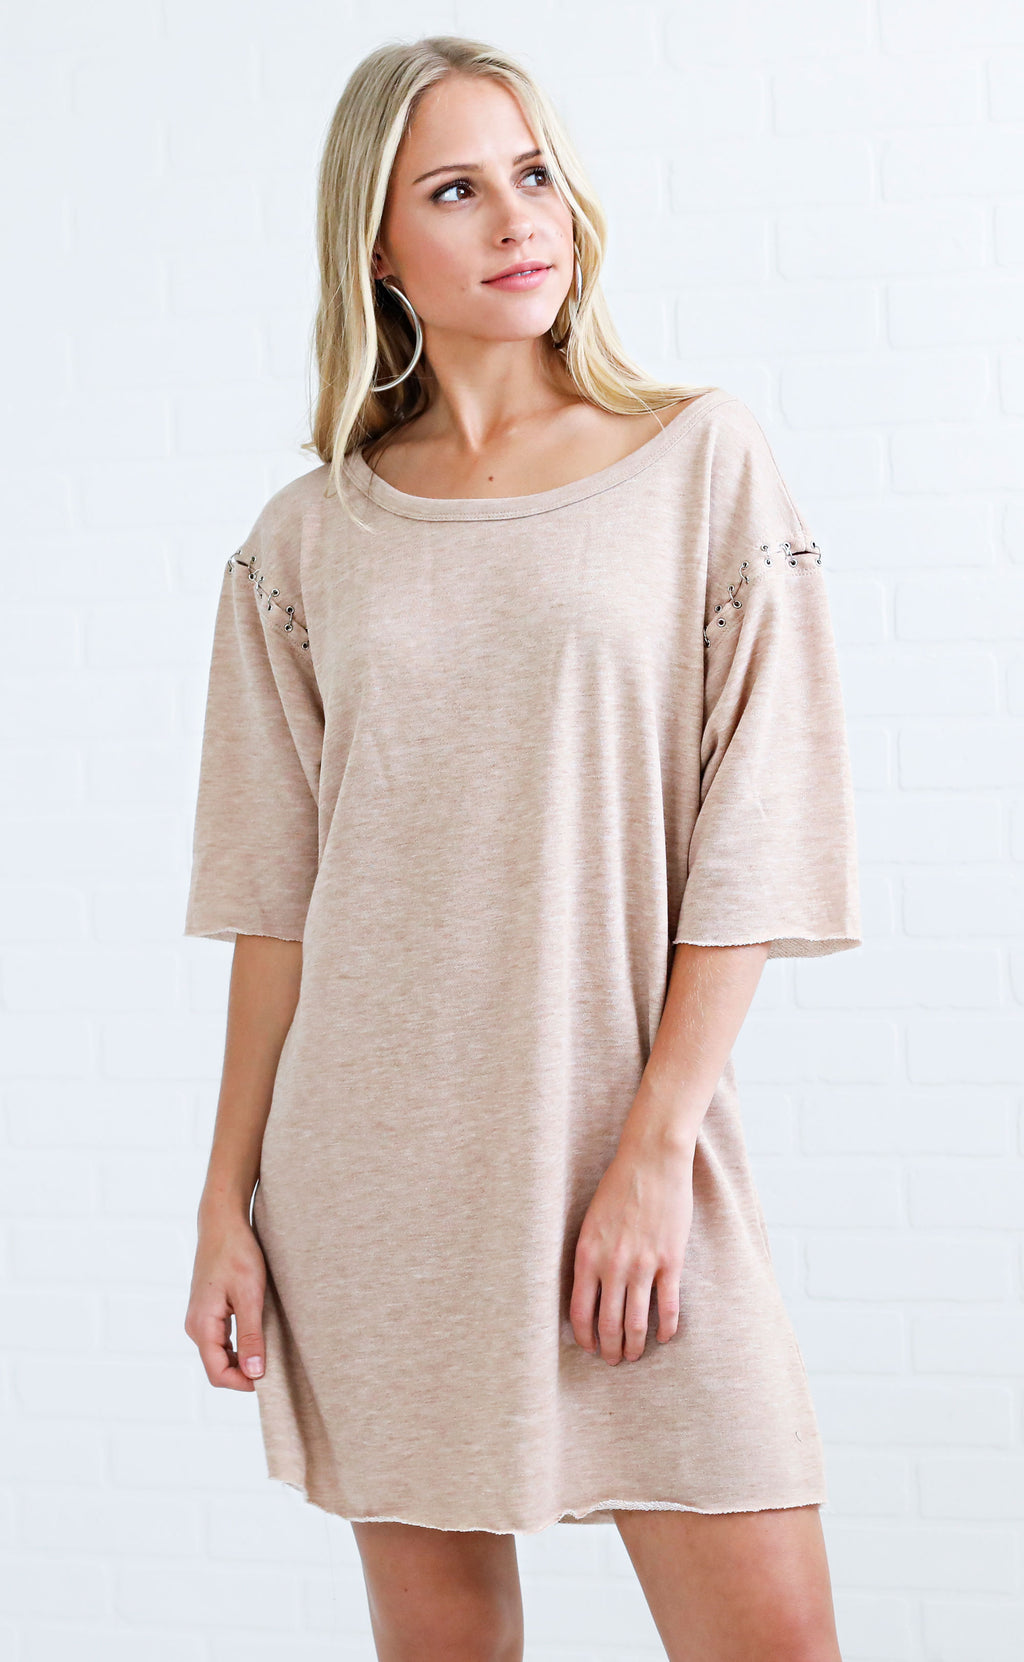 ring to it sweatshirt dress